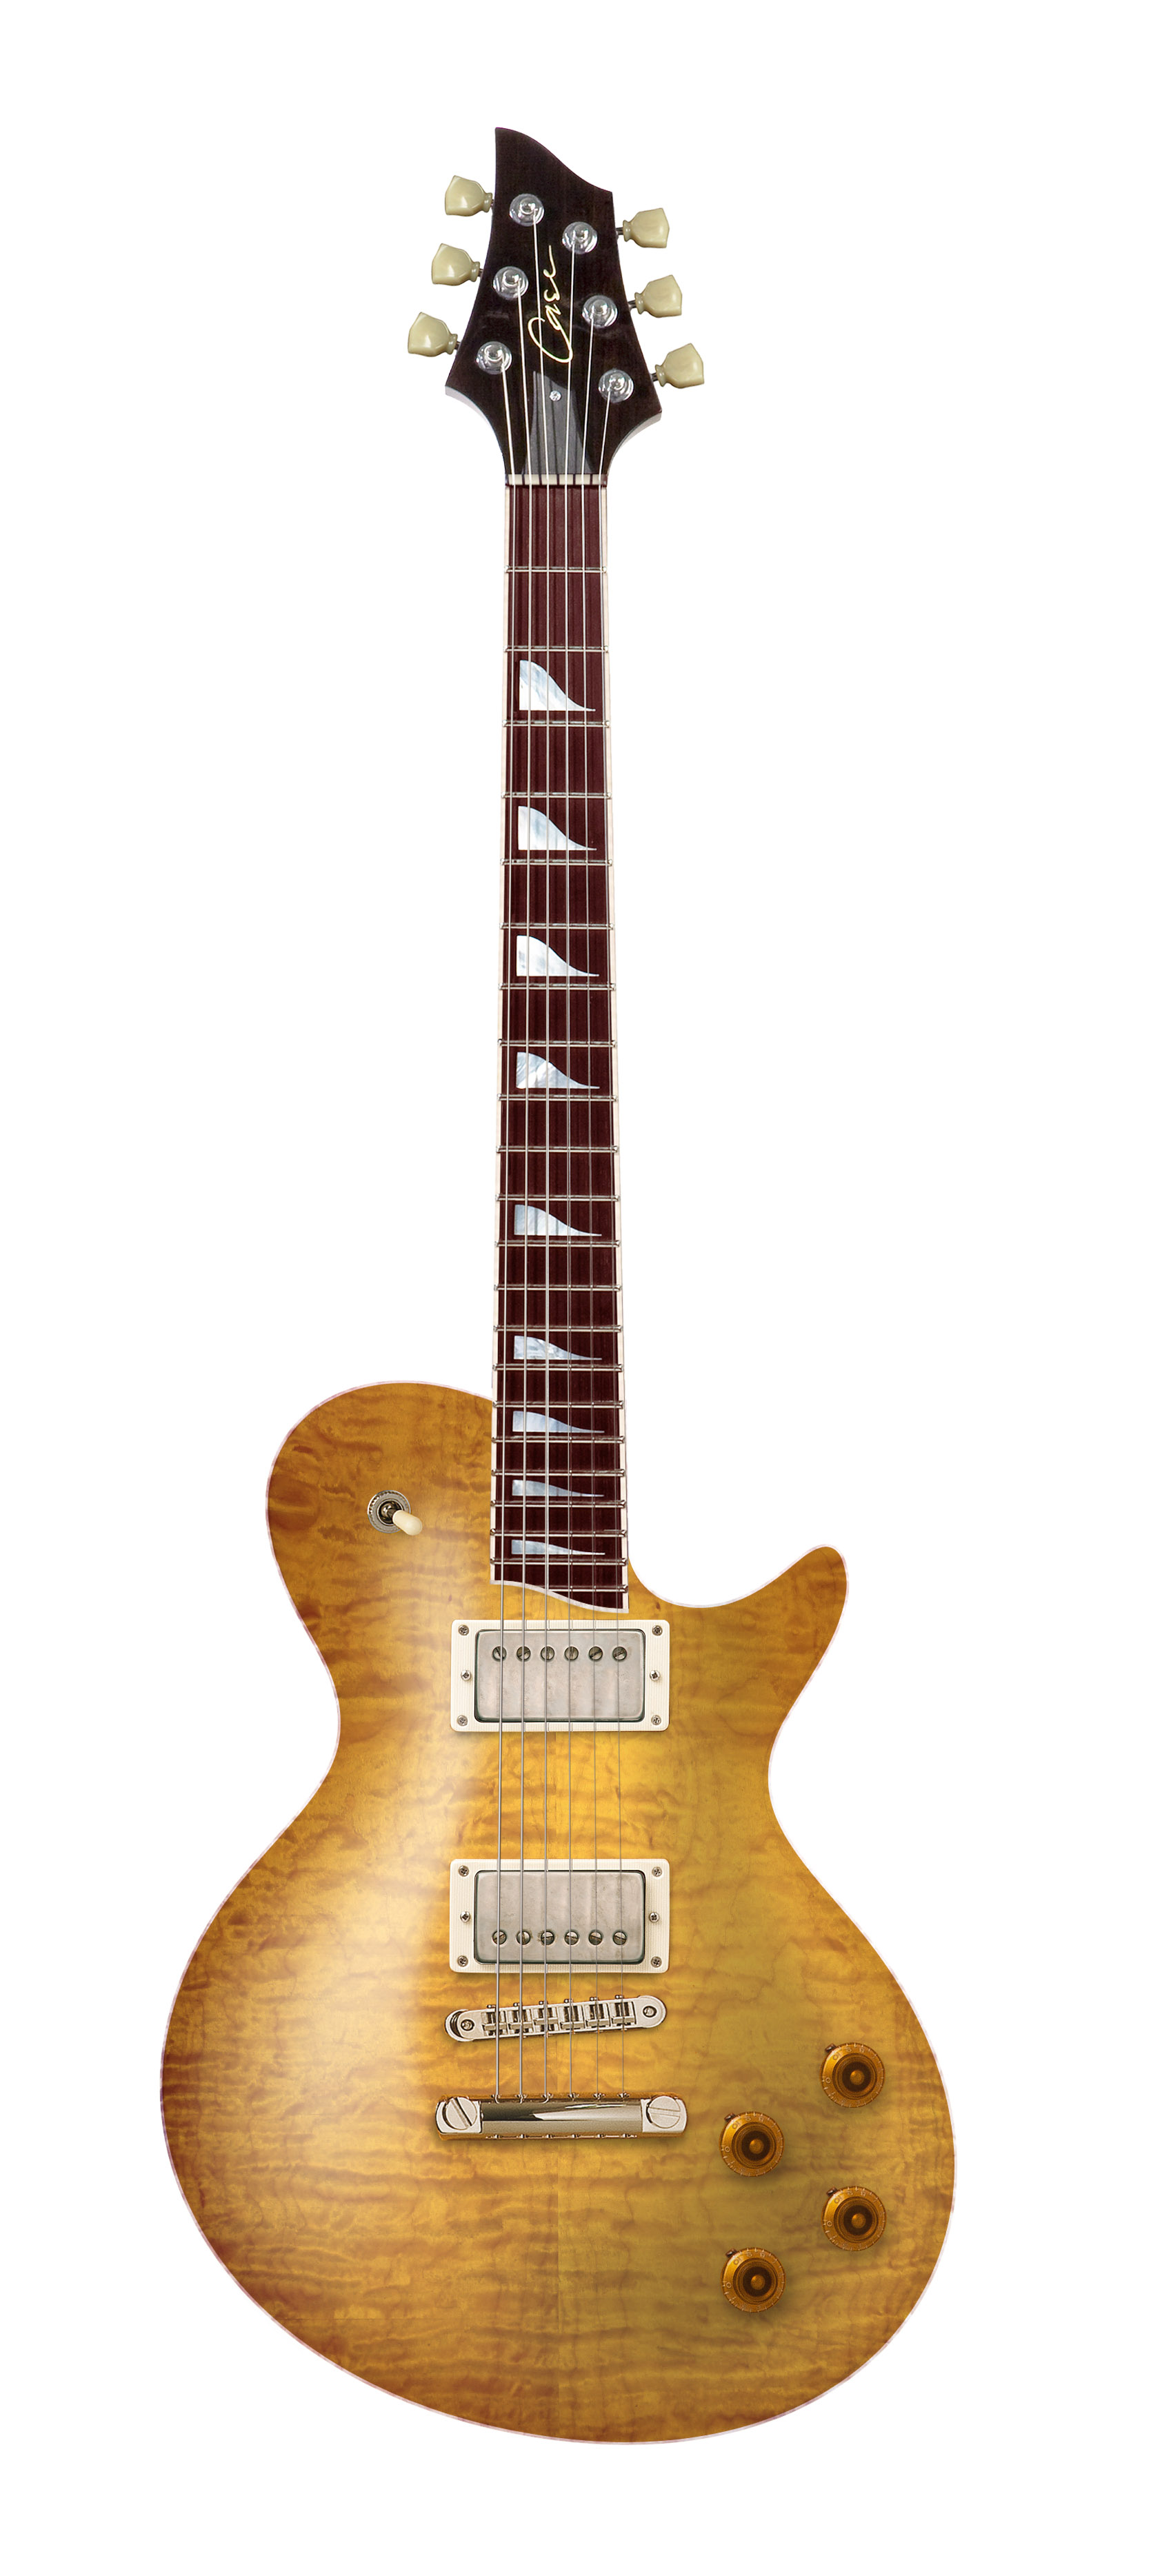 J1'59 burst - visual using photo of actual wood